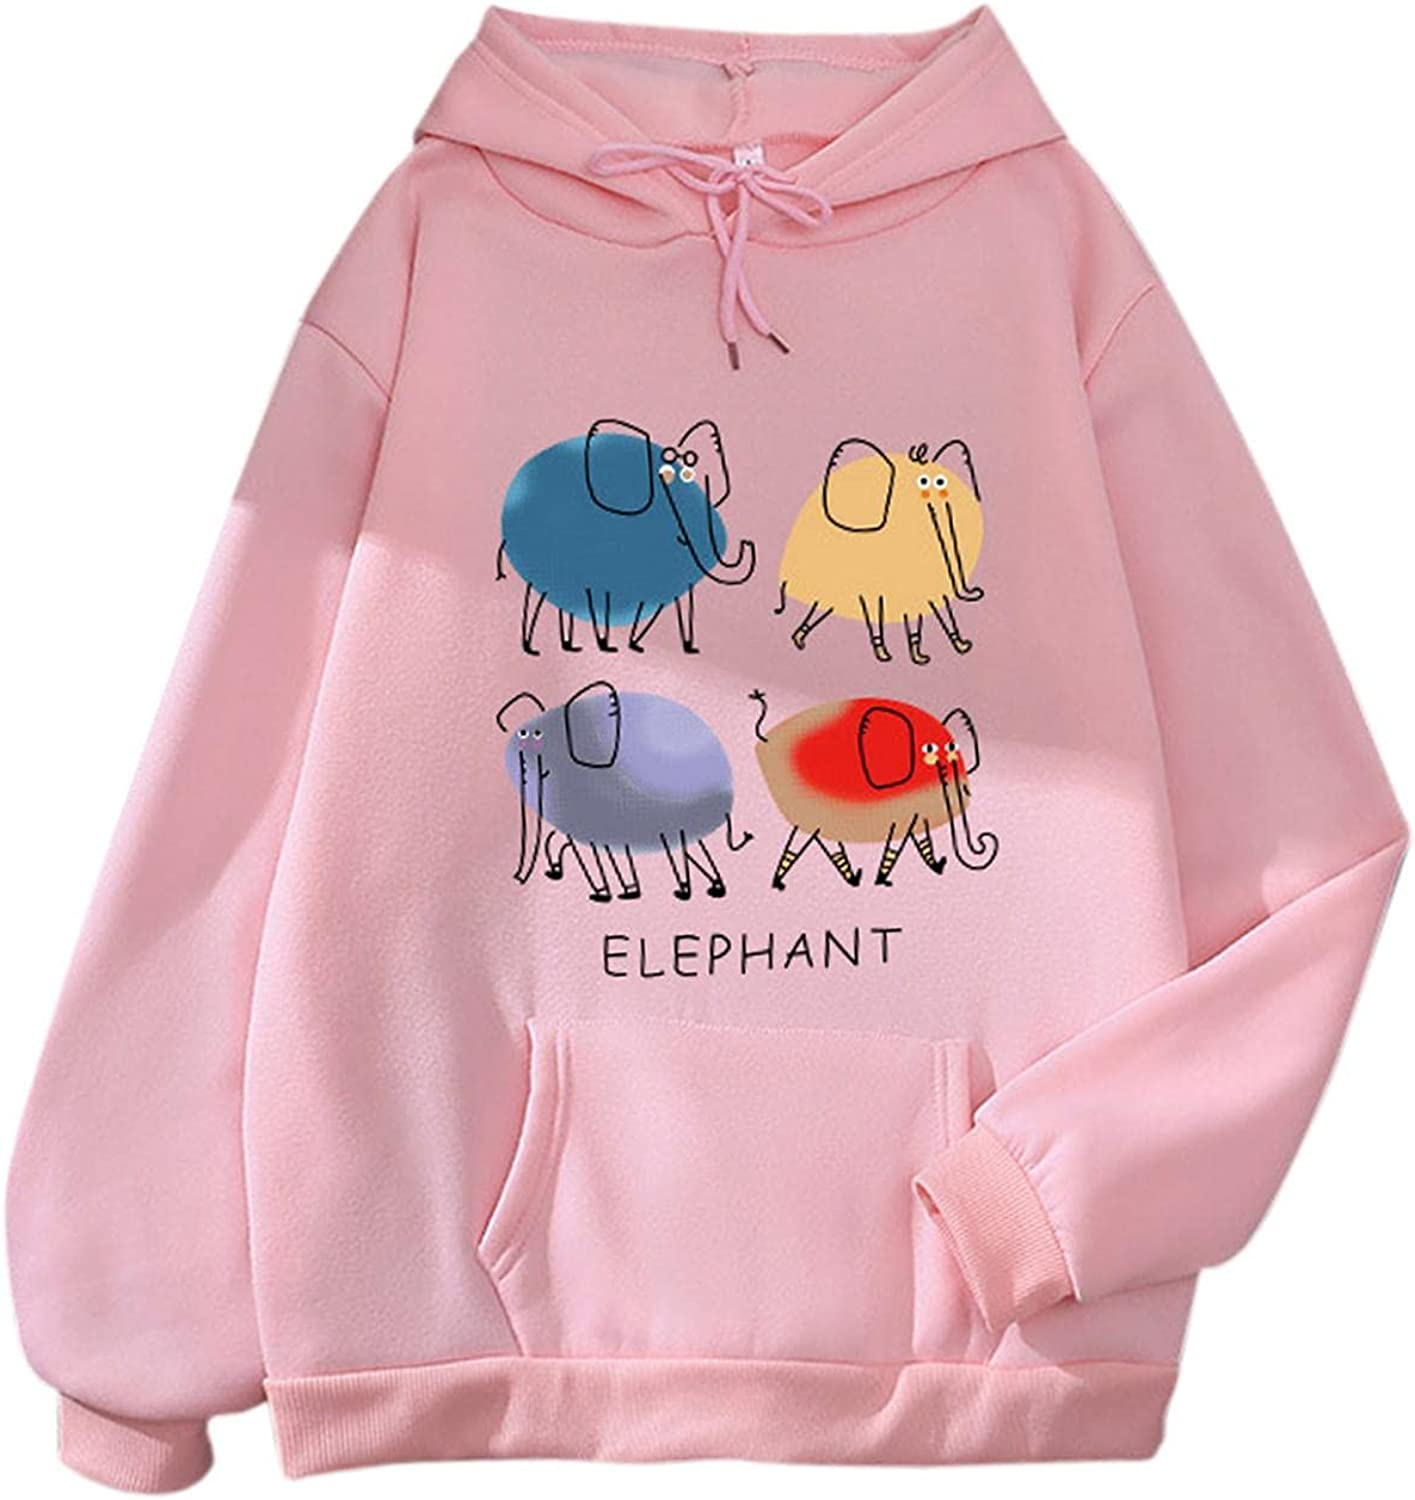 Graphic Hoodies for Women Aesthetic Cute Small Elephant Pullover Crewneck Sweatshirts Casual Loose Hoodies Pocket